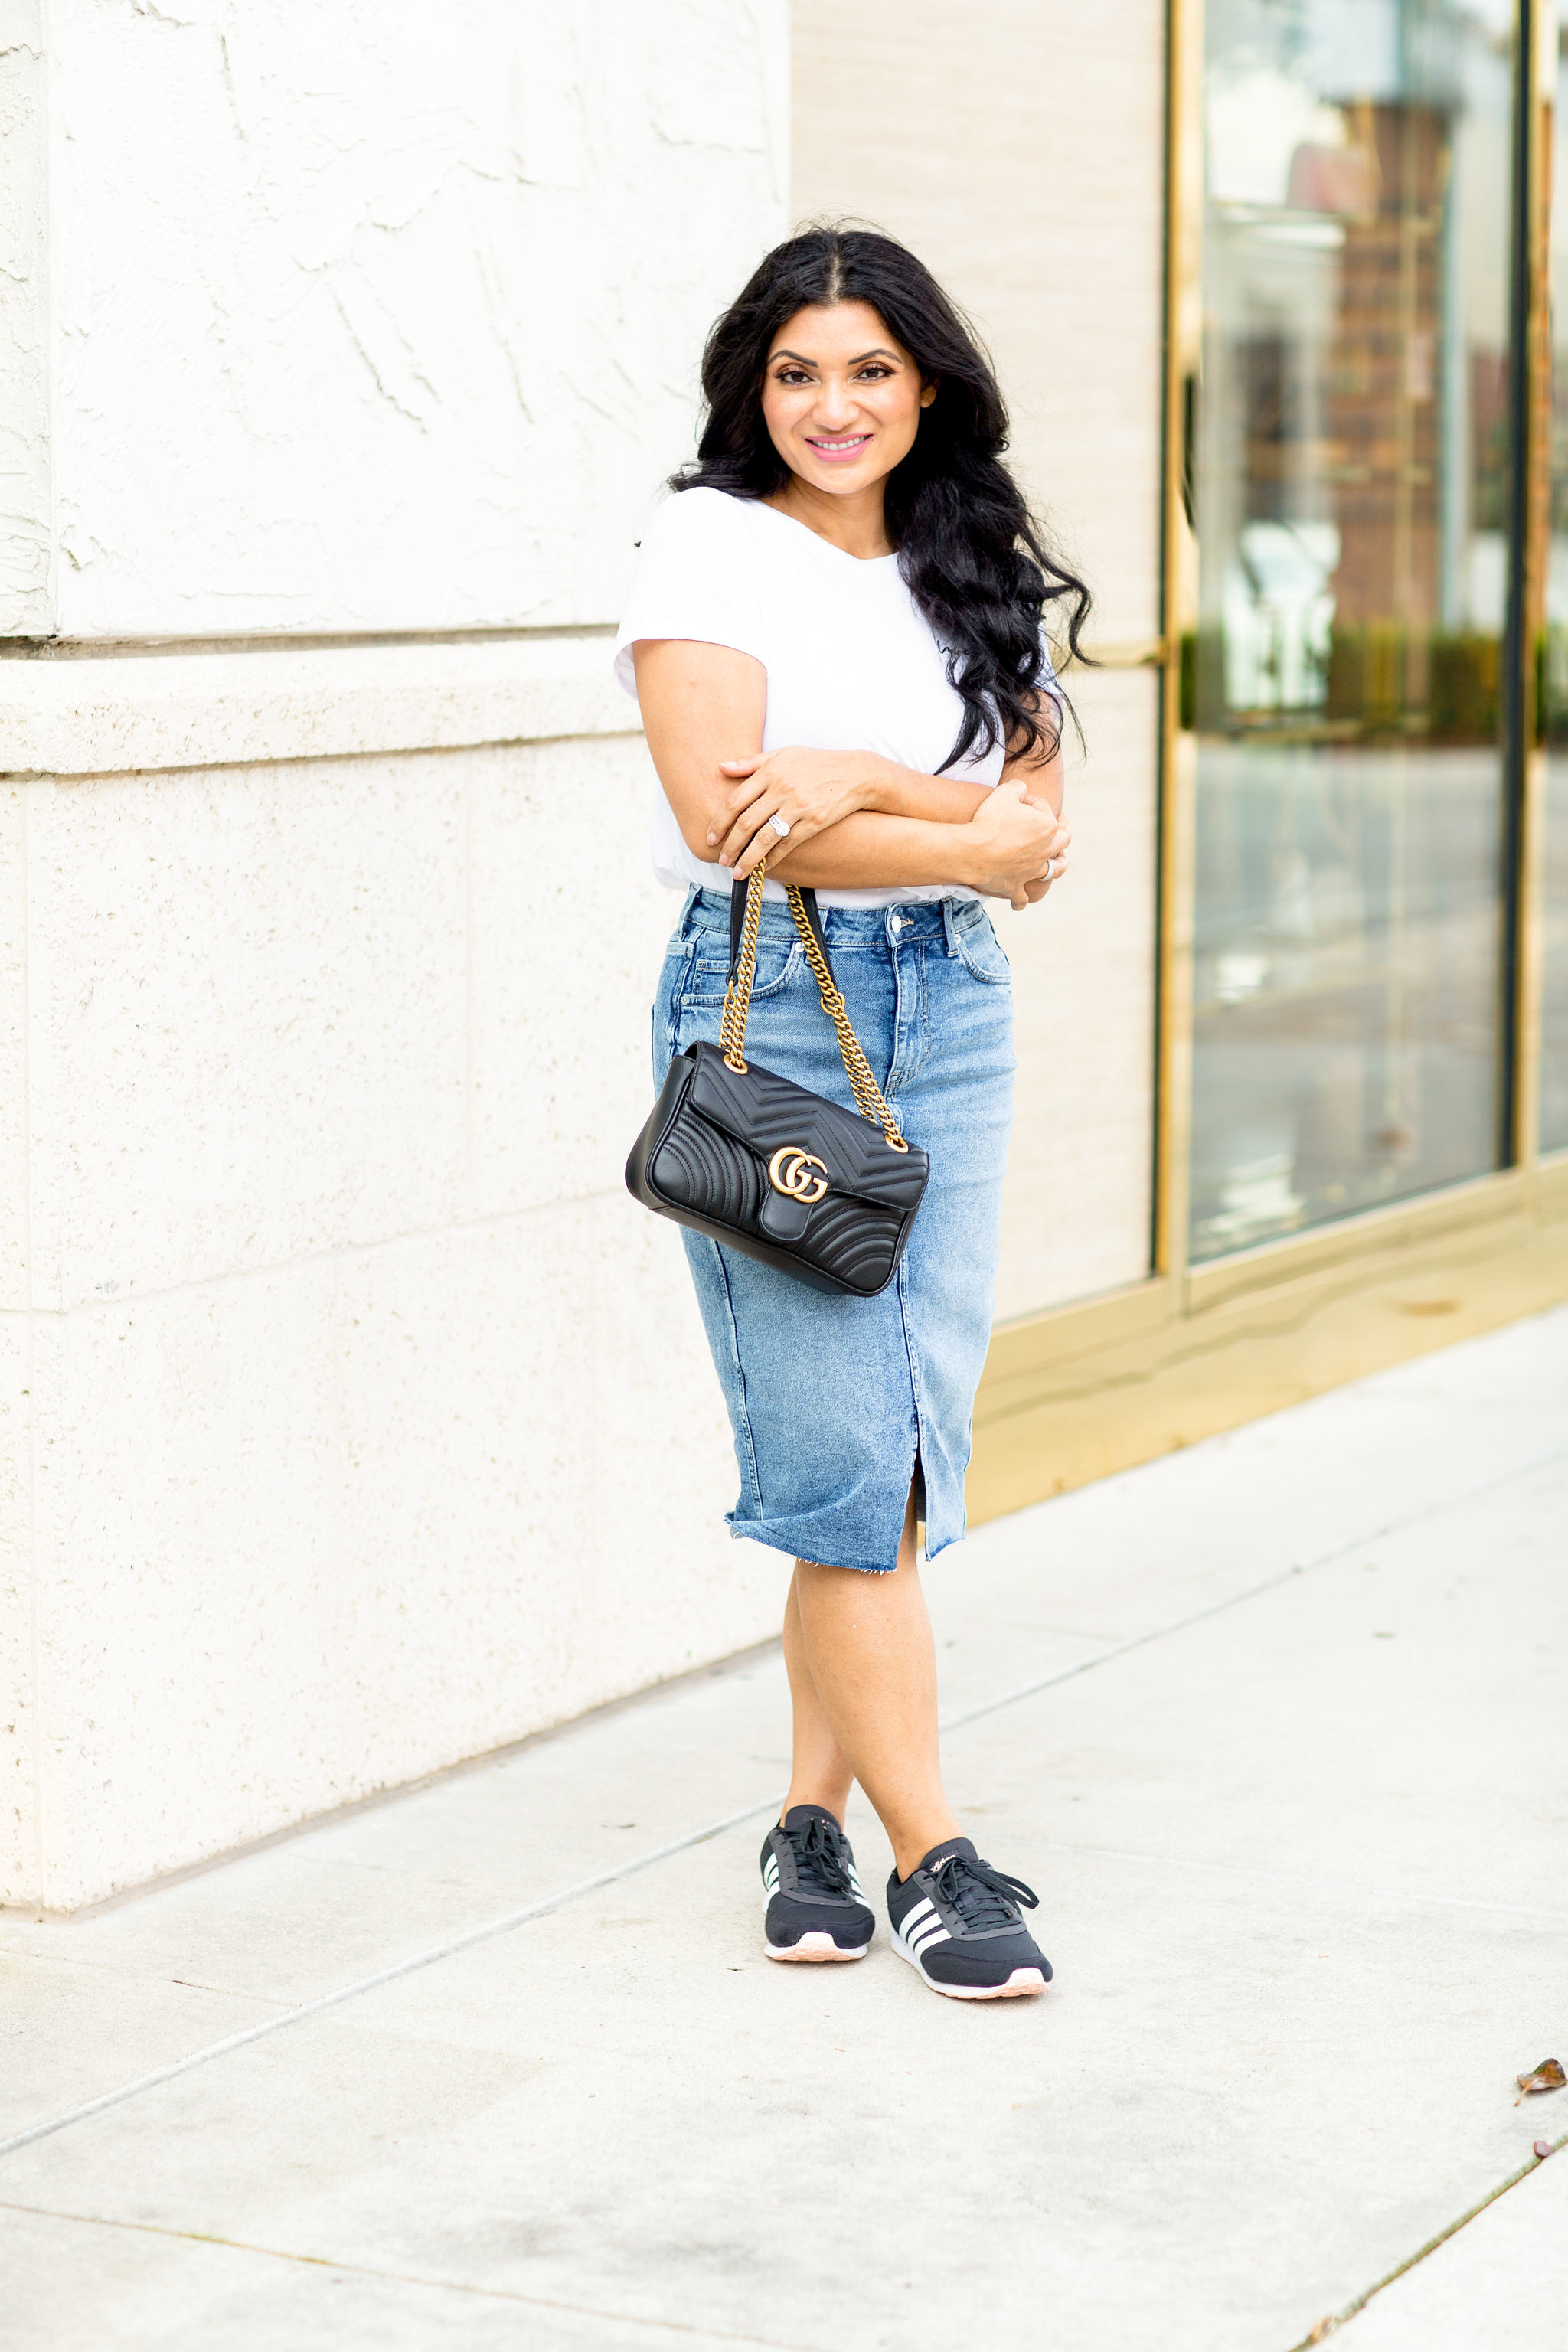 Need the perfect everyday outfit? Orange County Blogger Debbie Savage is sharing her favorite everyday outfit here!